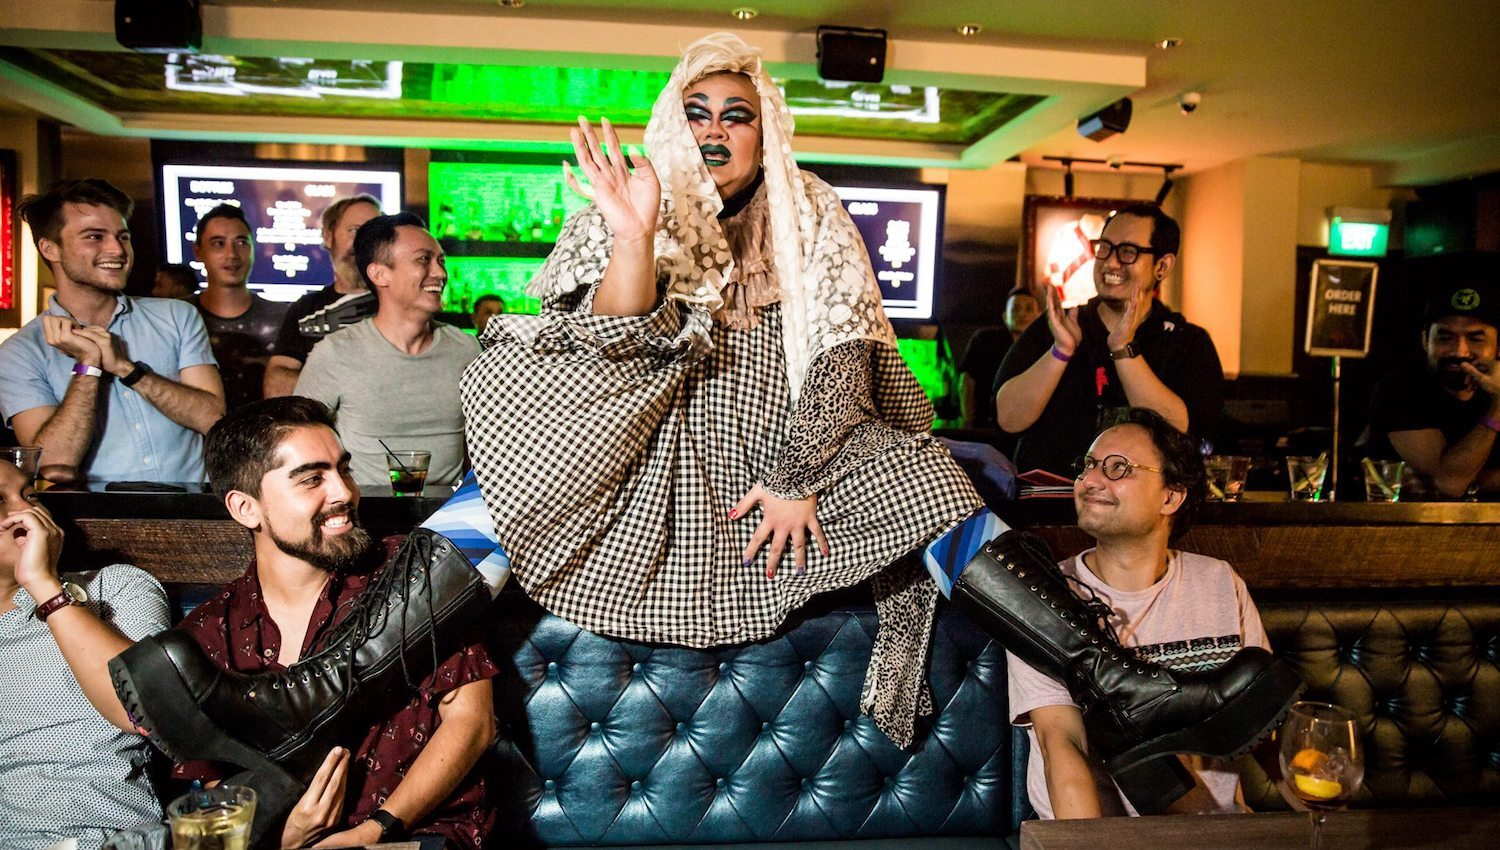 The best places to catch a drag show in Singapore